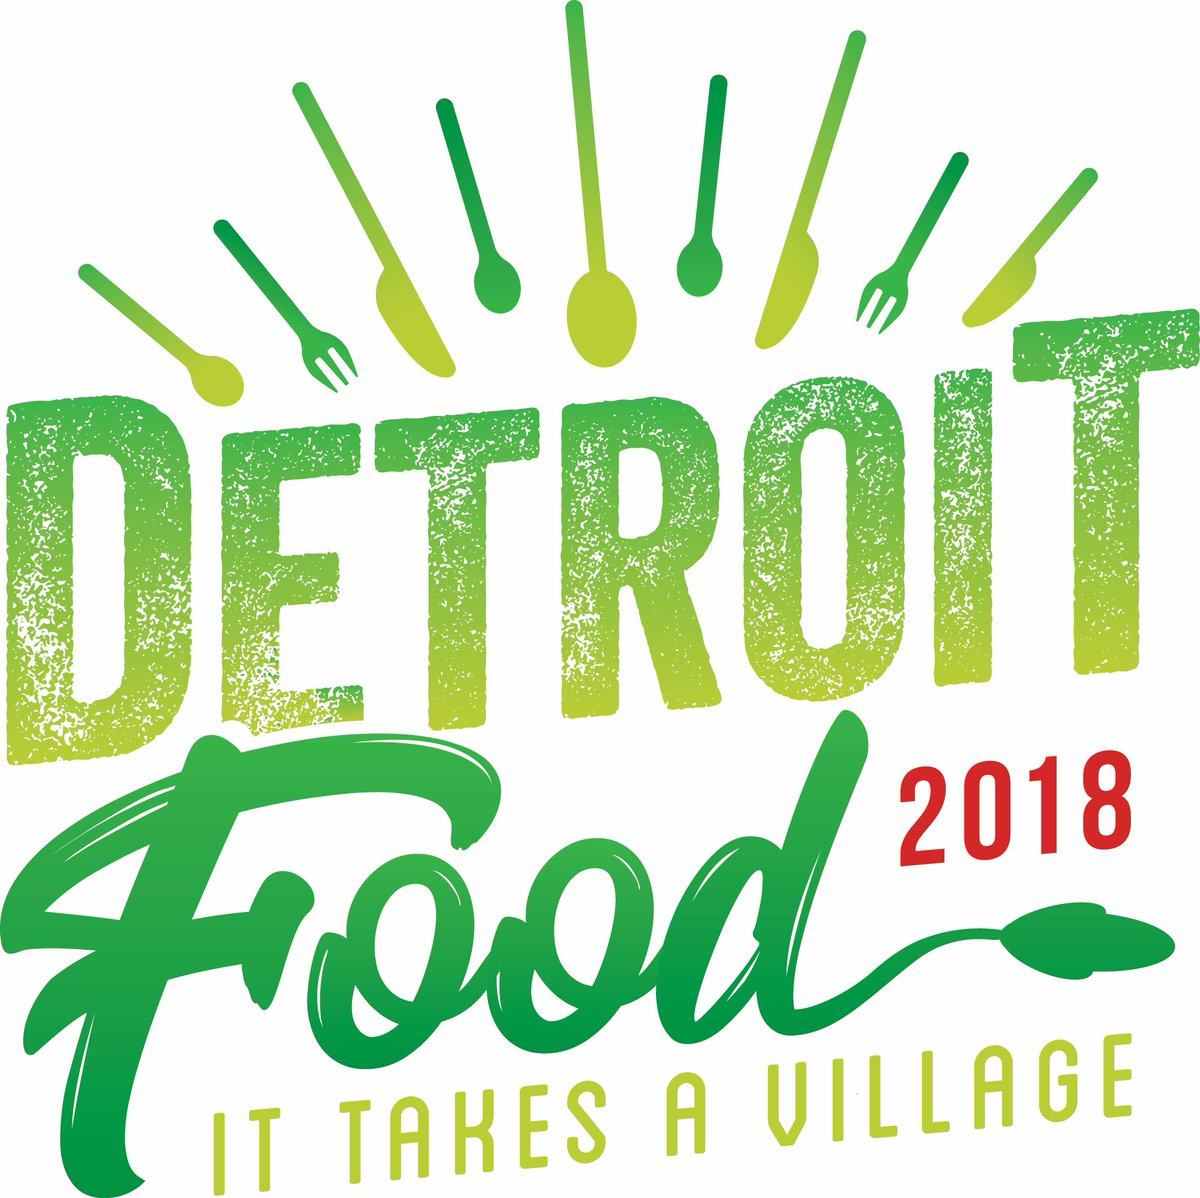 Detroit Food Policy Council On Twitter There S Still Time To Register For Detroit Food Summit 2018 Registration Closes On Monday 3 5 At Midnight For More Information On Registration Volunteer Sign Up The